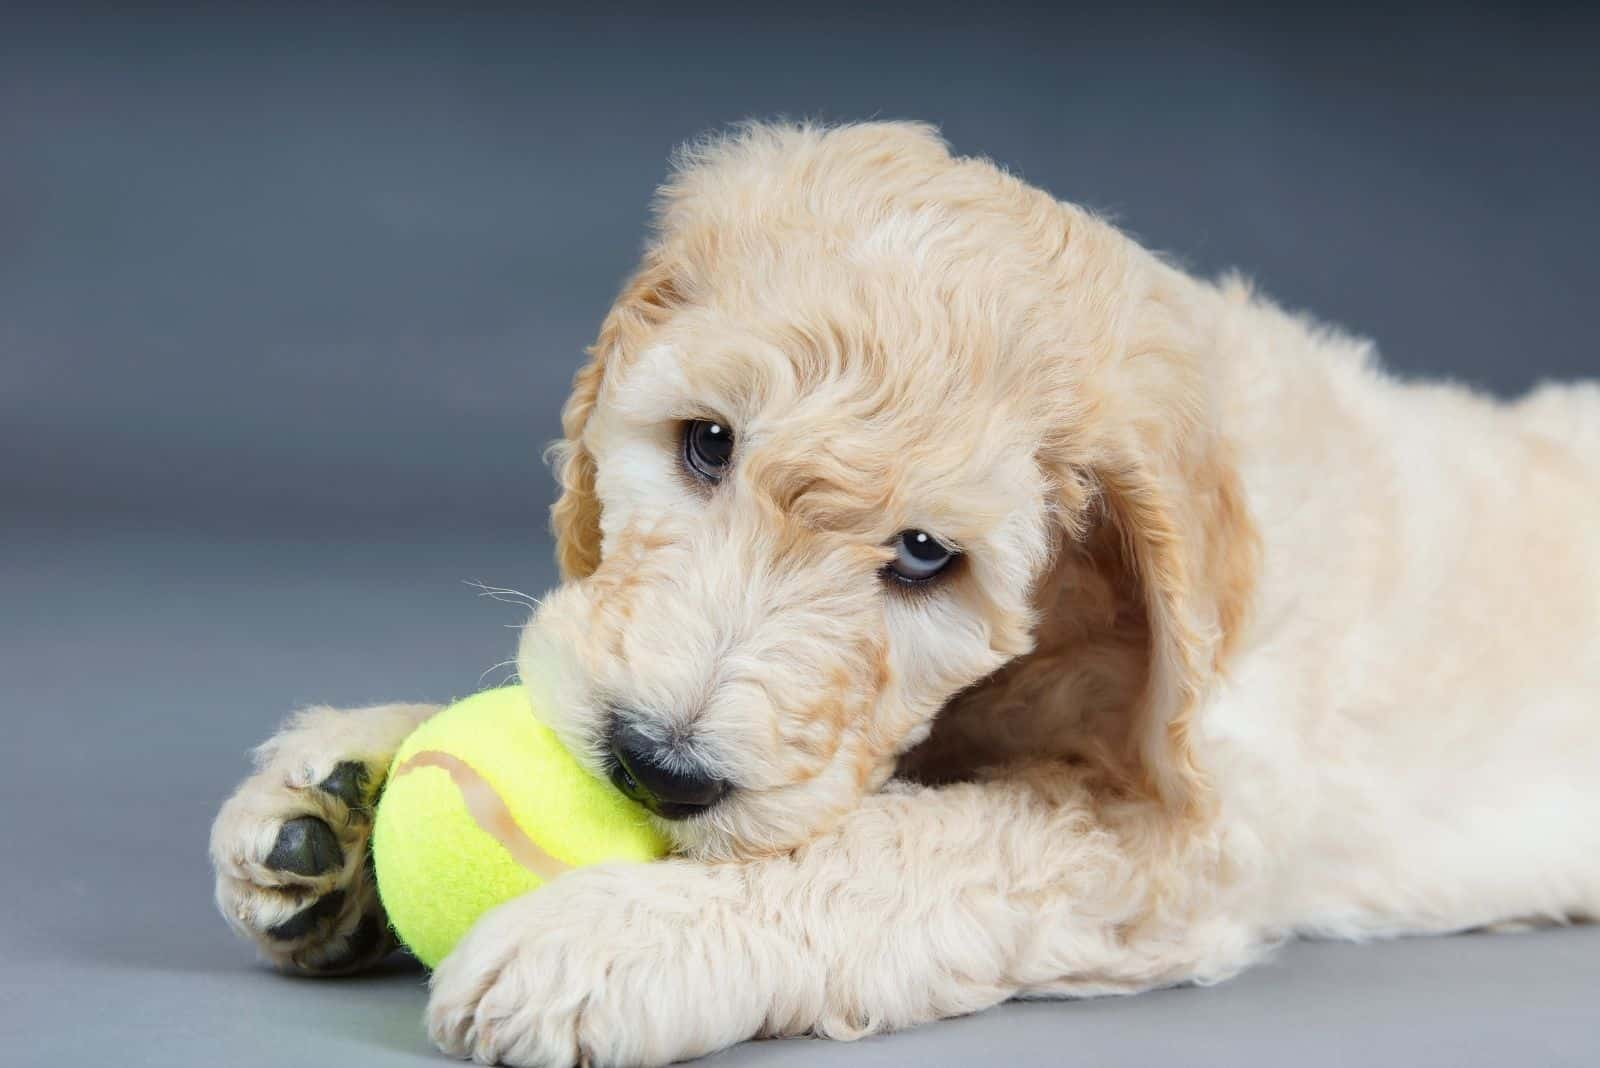 cute goldendoodle playing and biting the green ball